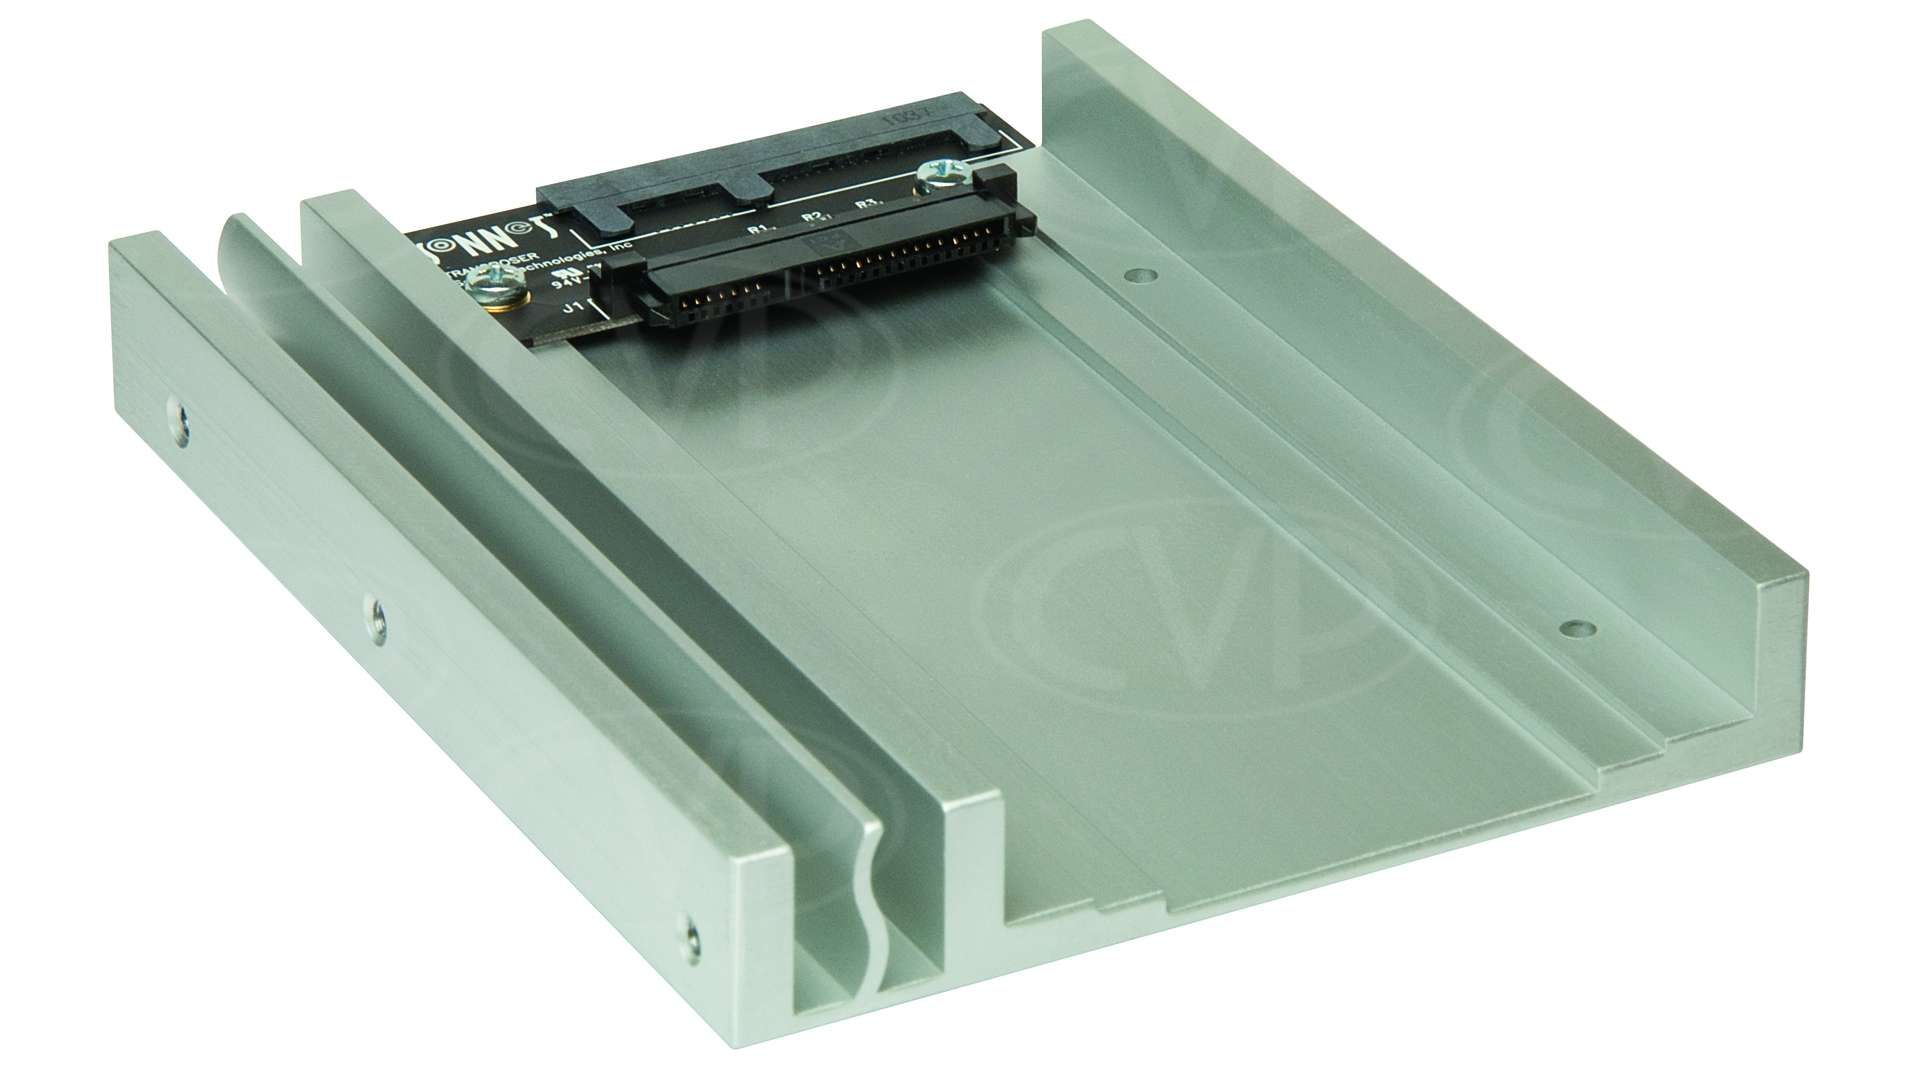 Sonnet SON-TP25STA35TA (SONTP25STA35TA) Universal 2.5-inch to 3.5-inch Drive Tray Adapter